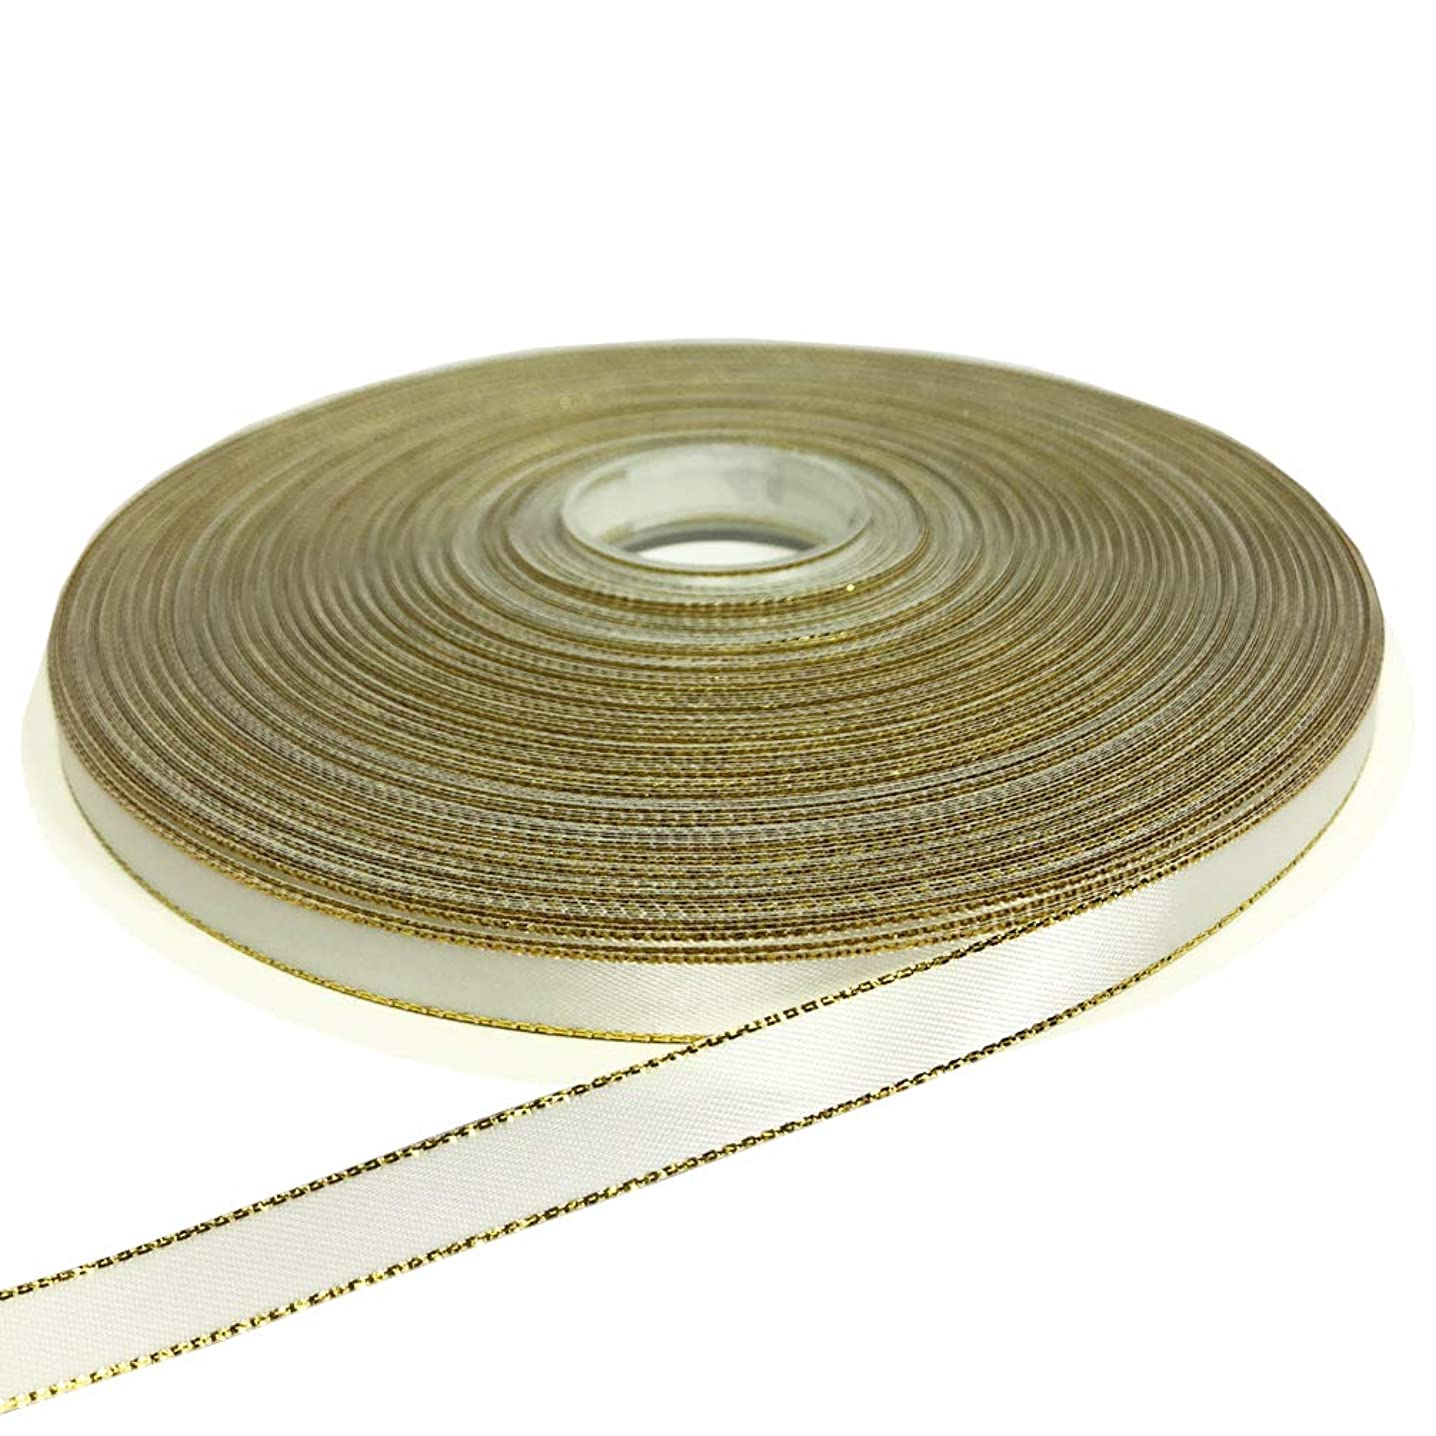 PartyMart 3/8 Inch Satin Ribbon with Golden Edges, 100 Yards, Off-White